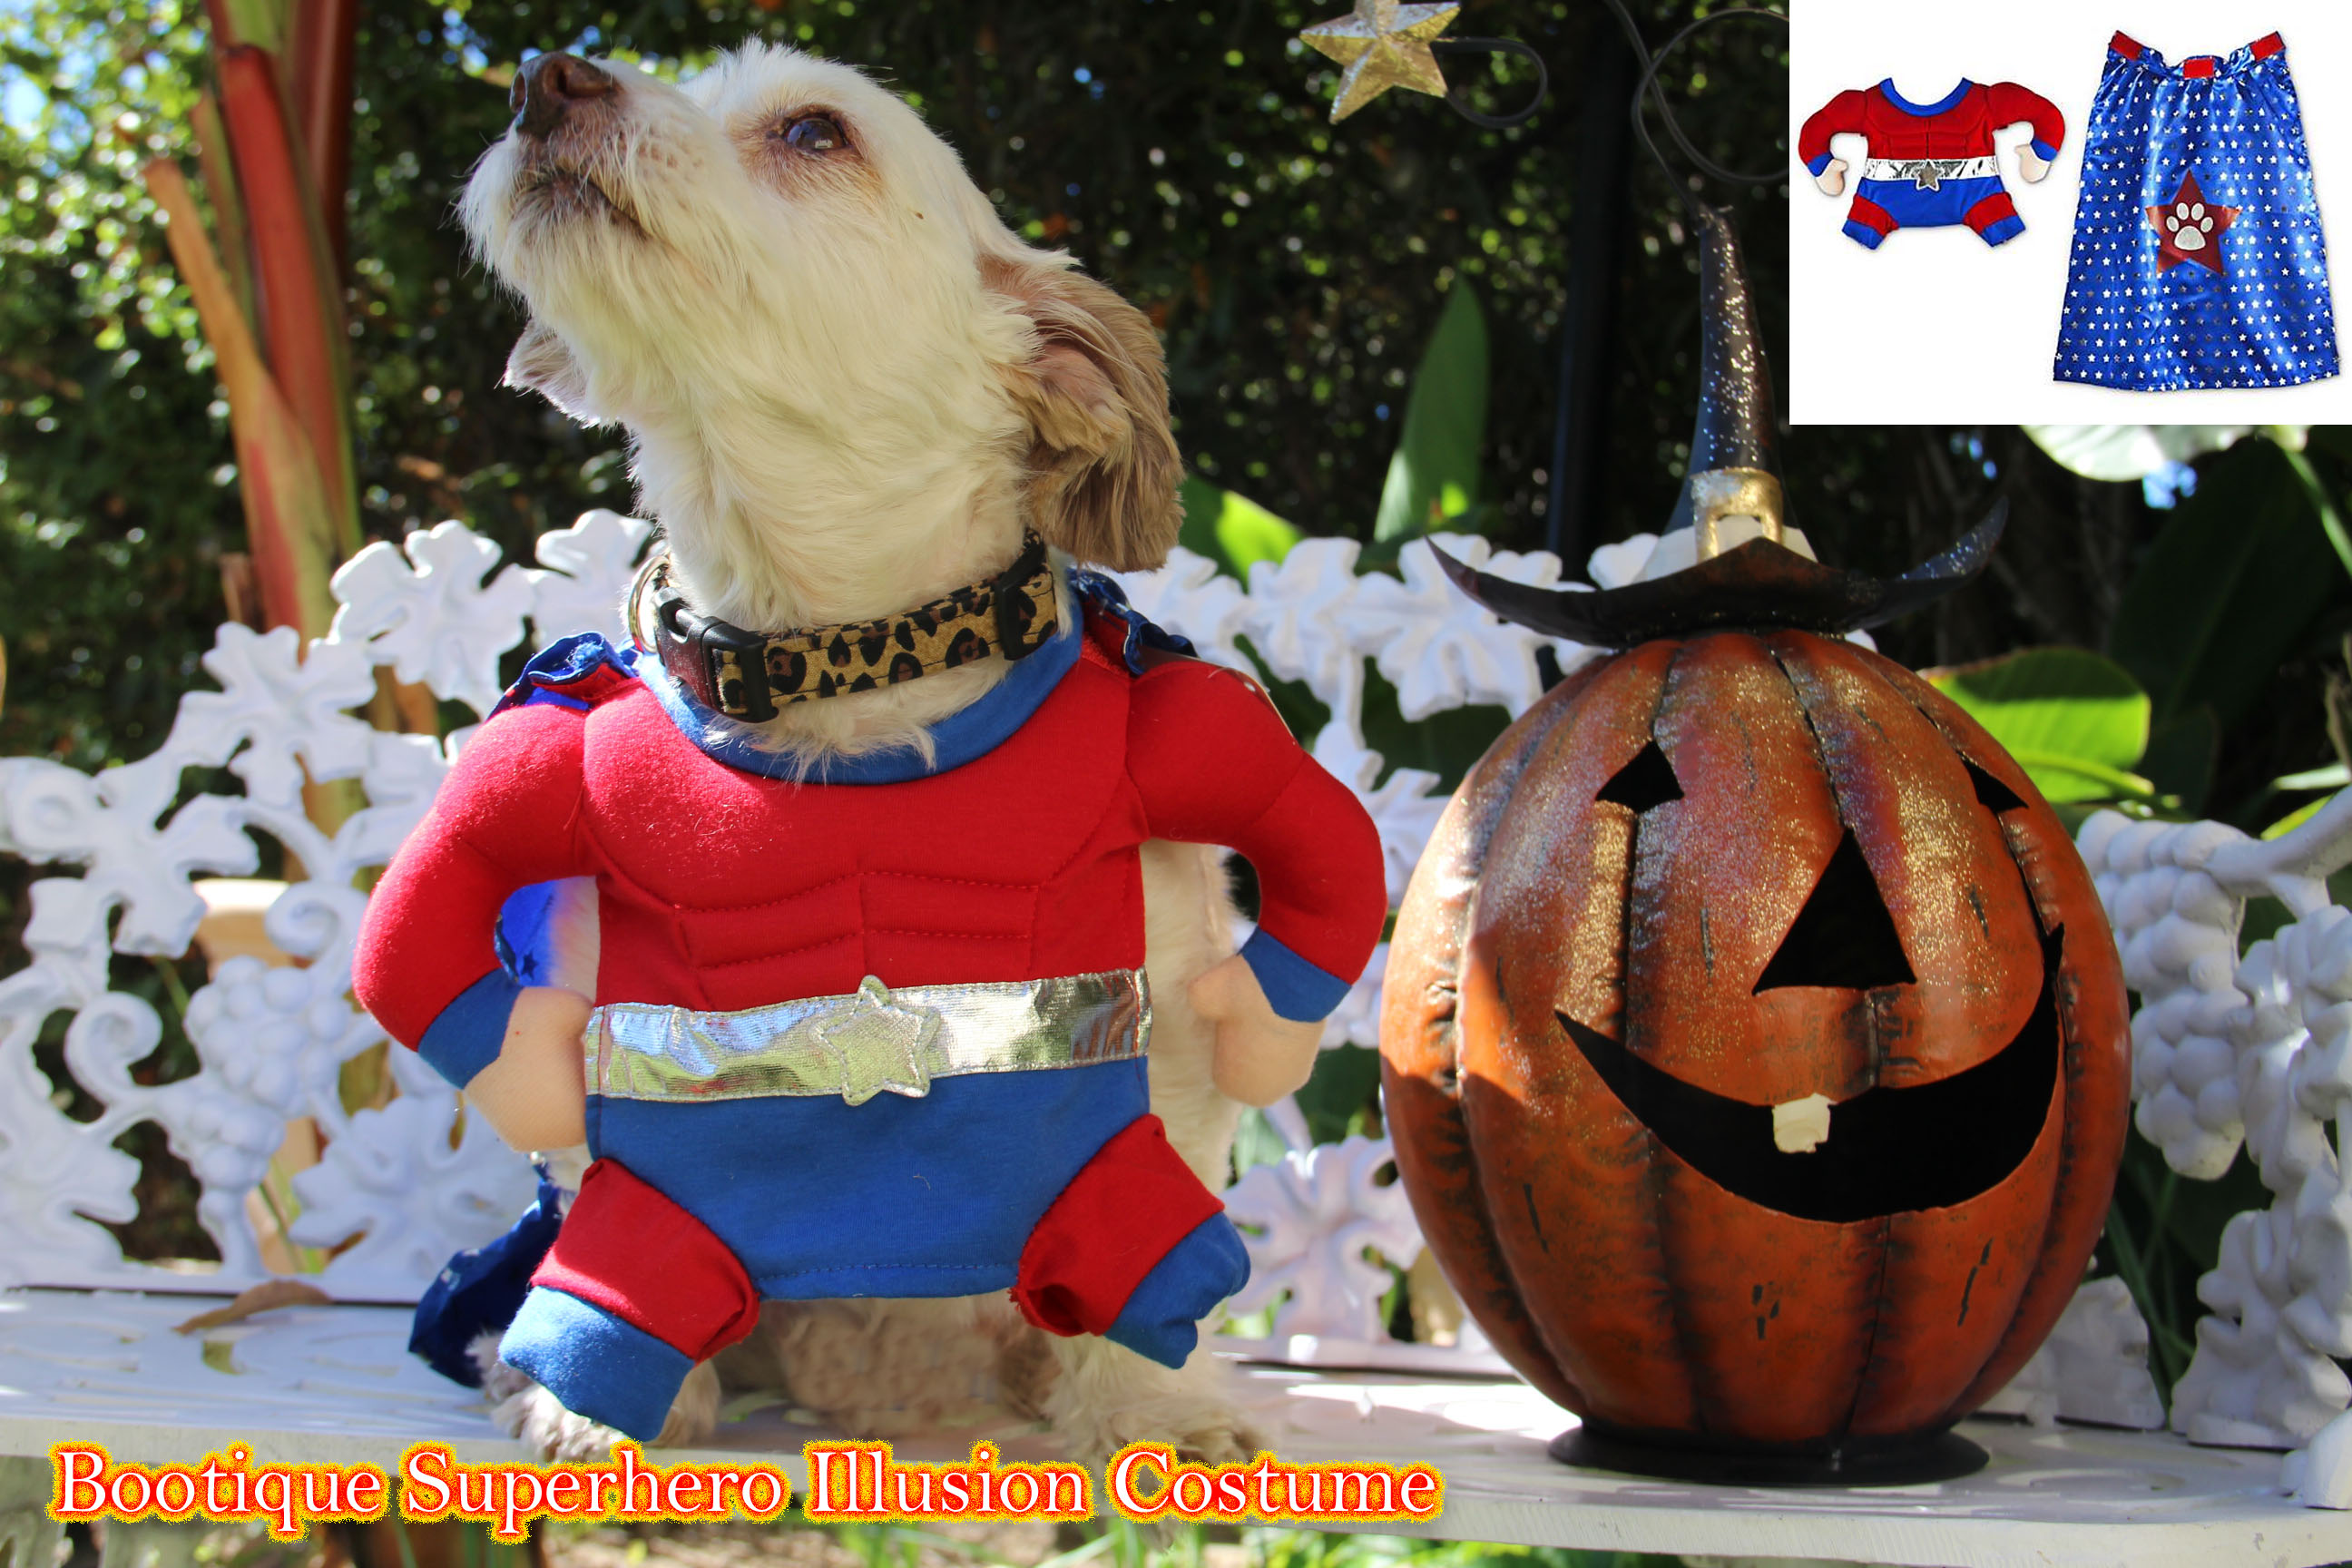 petco, halloween costume, superhero